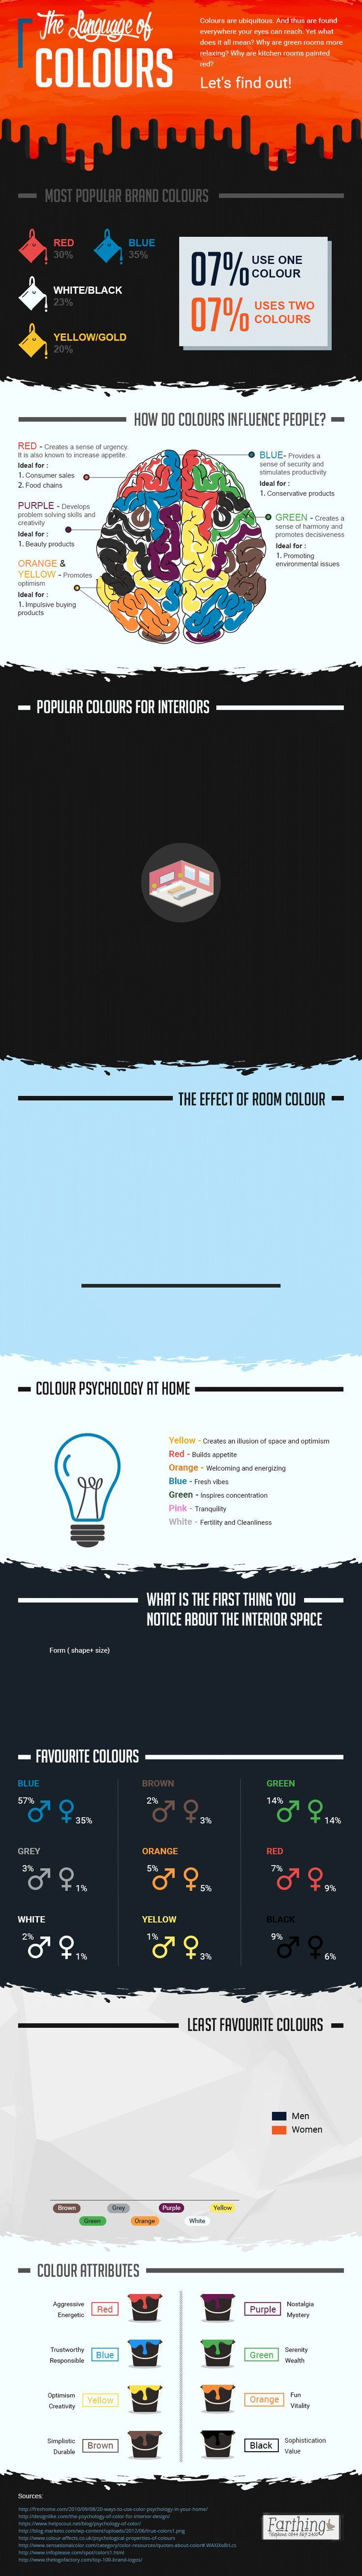 Marketing-Infographic-Learn-how-to-use-color-psychology-from-a-cool-animated-infographic-Youll-under Marketing Infographic : Learn how to use color psychology from a cool animated infographic! You'll under...